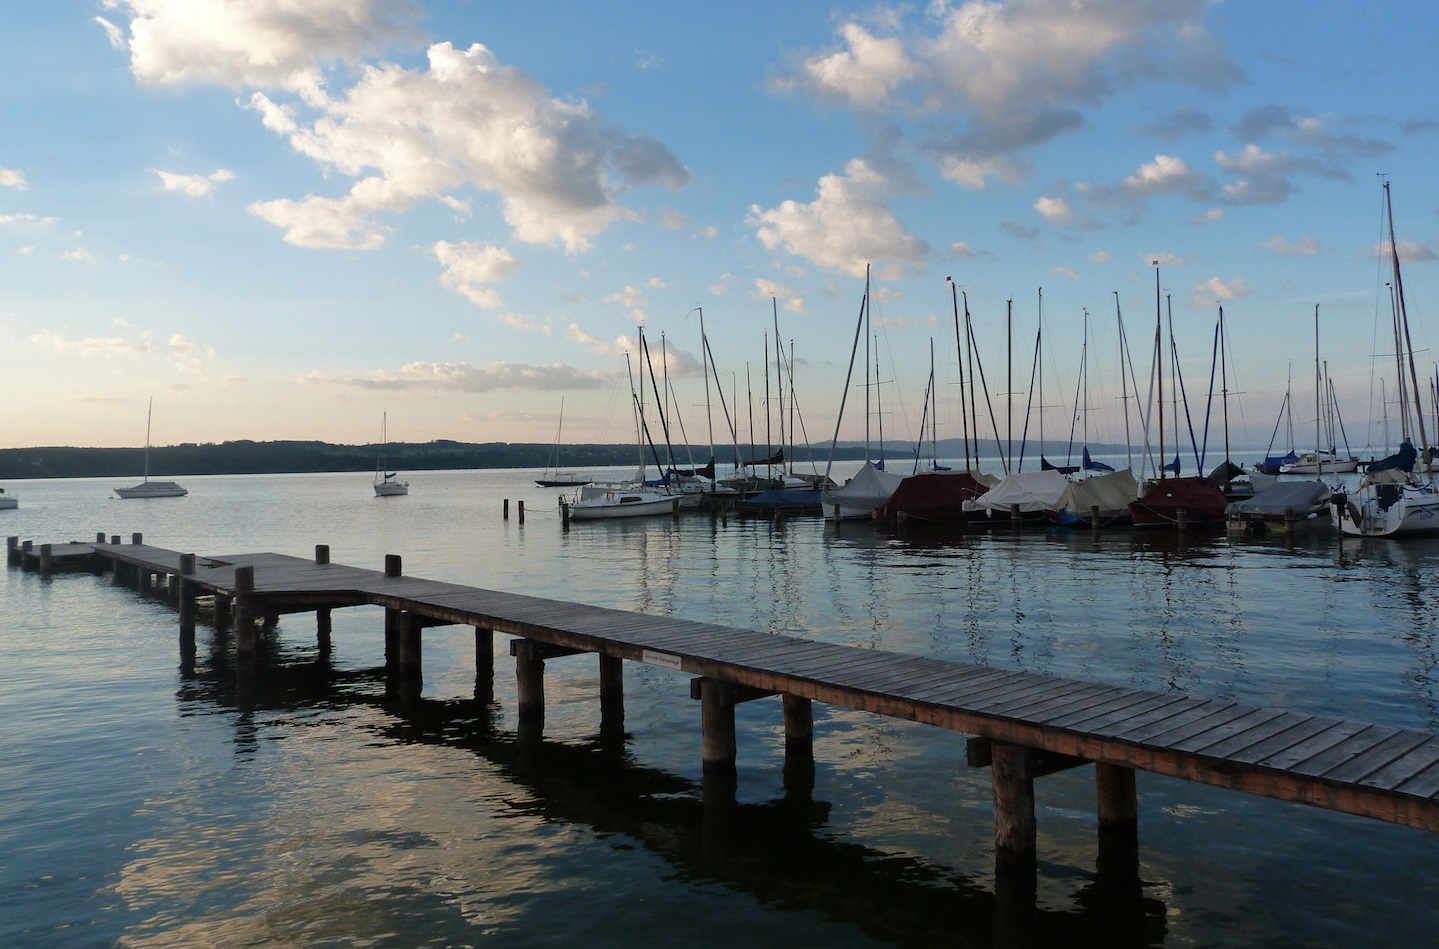 Morgen am Ammersee